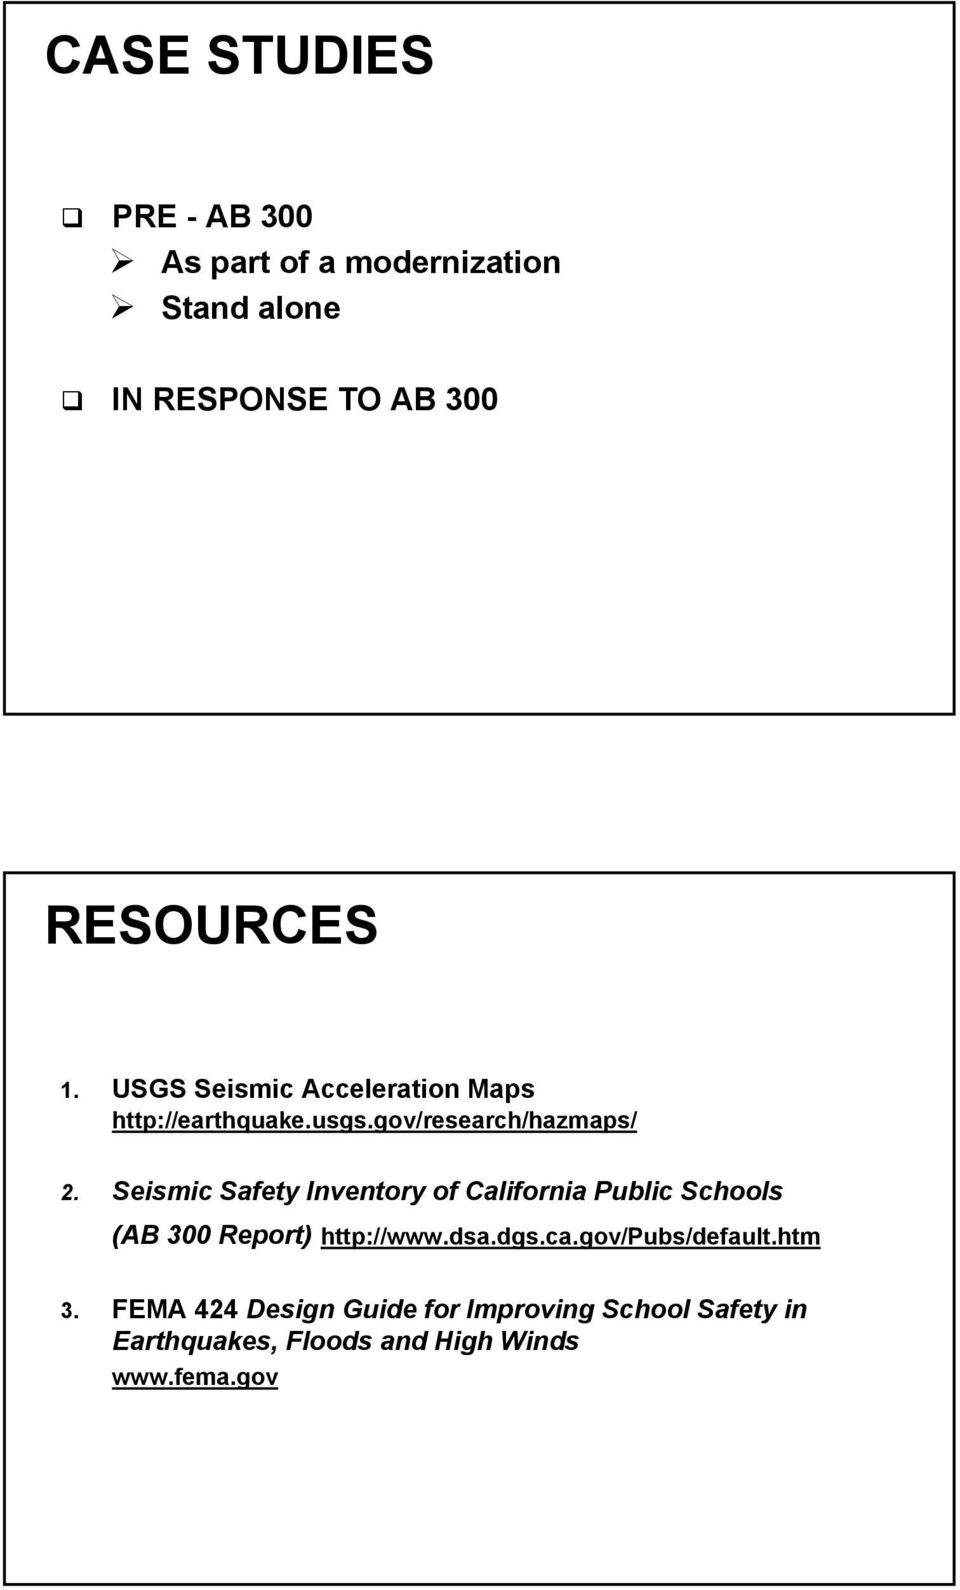 Seismic Safety Inventory of California Public Schools (AB 300 Report) http://www.dsa.dgs.ca.